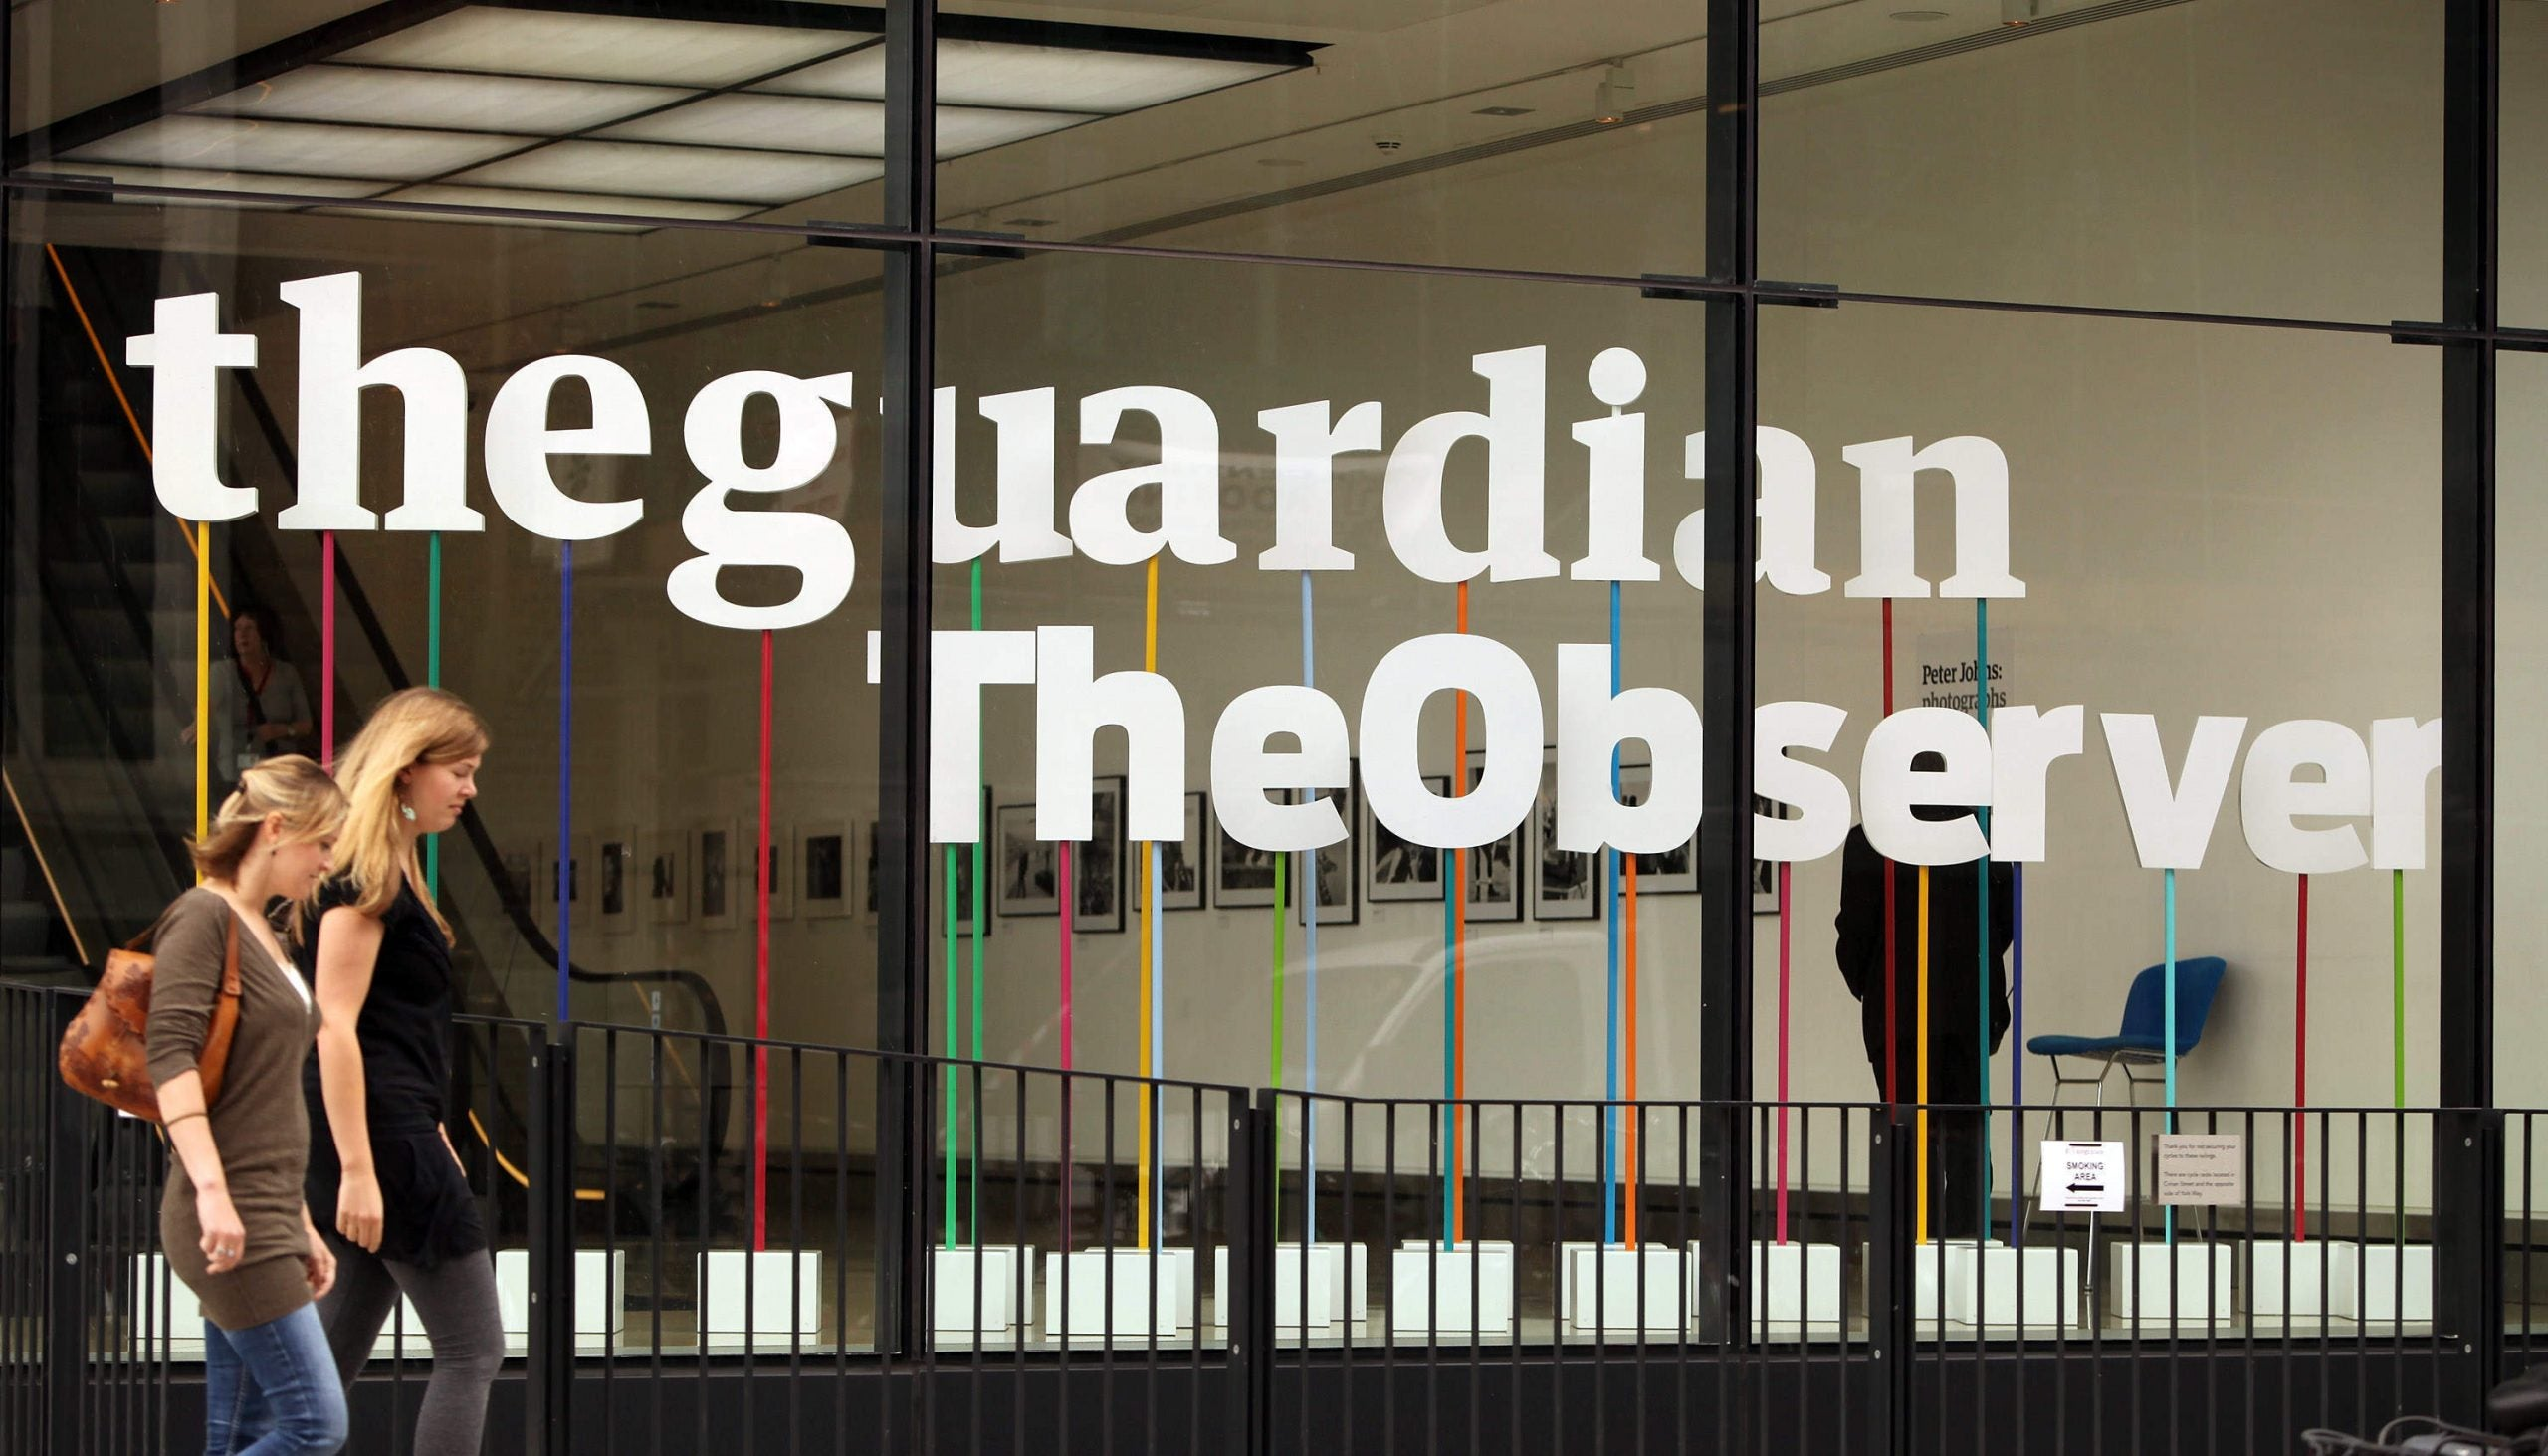 Bad news at the Guardian – is it too late to apply the brakes?